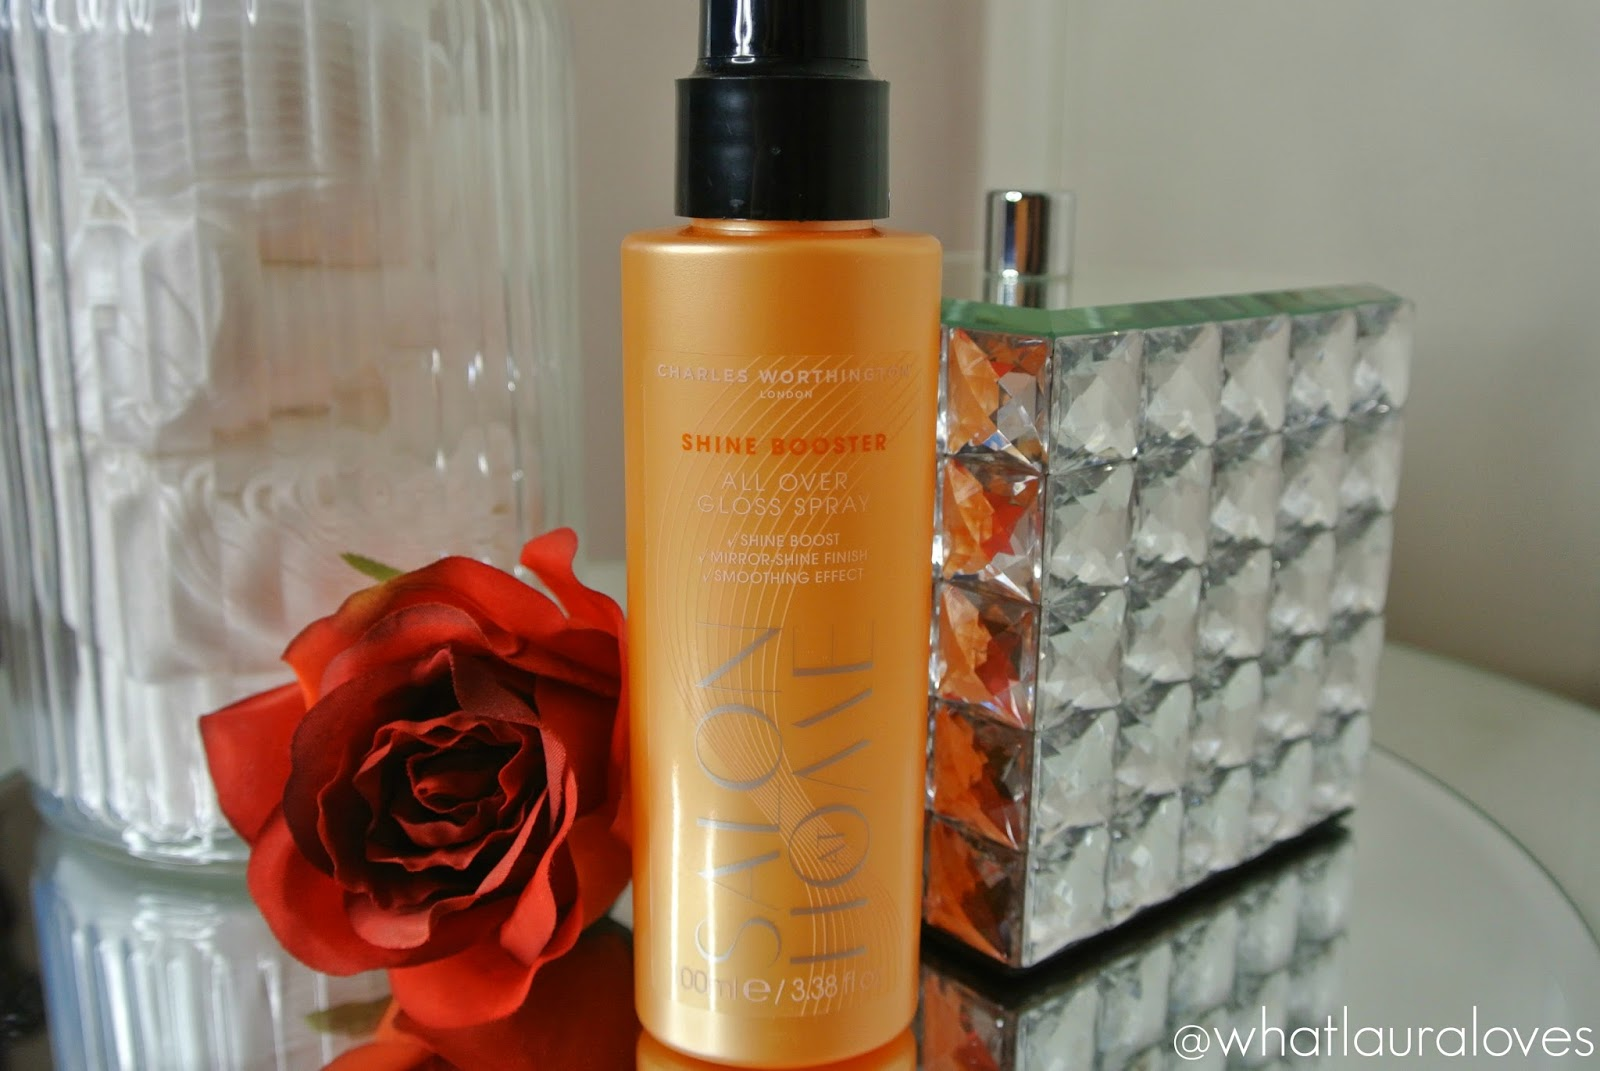 Charles Worthington Shine Booster All Over Gloss Spray Review Shiny Healthy Hair